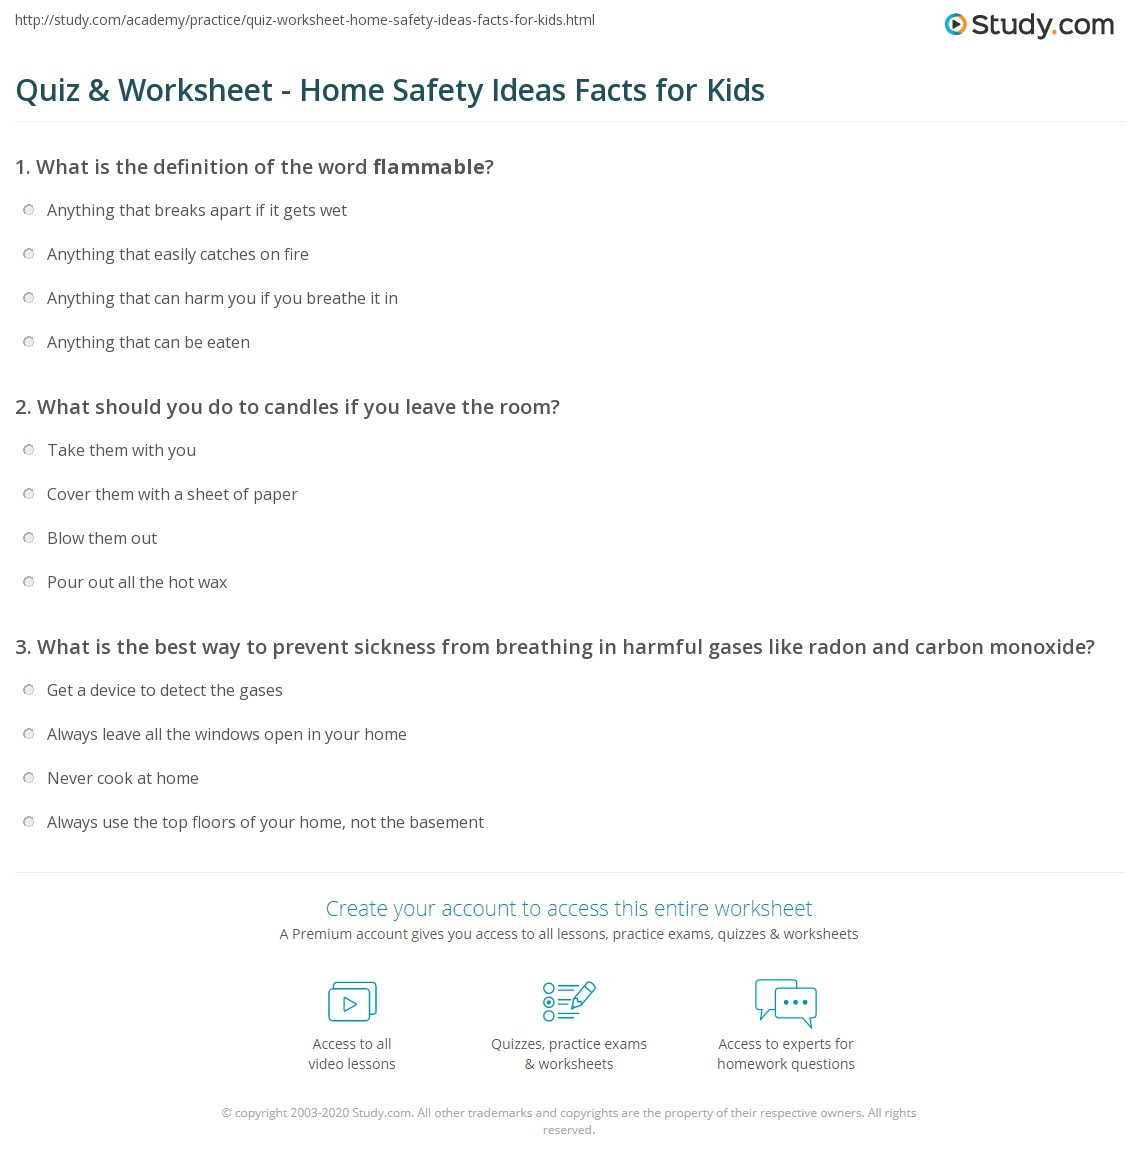 quiz worksheet home safety ideas facts for kids. Black Bedroom Furniture Sets. Home Design Ideas